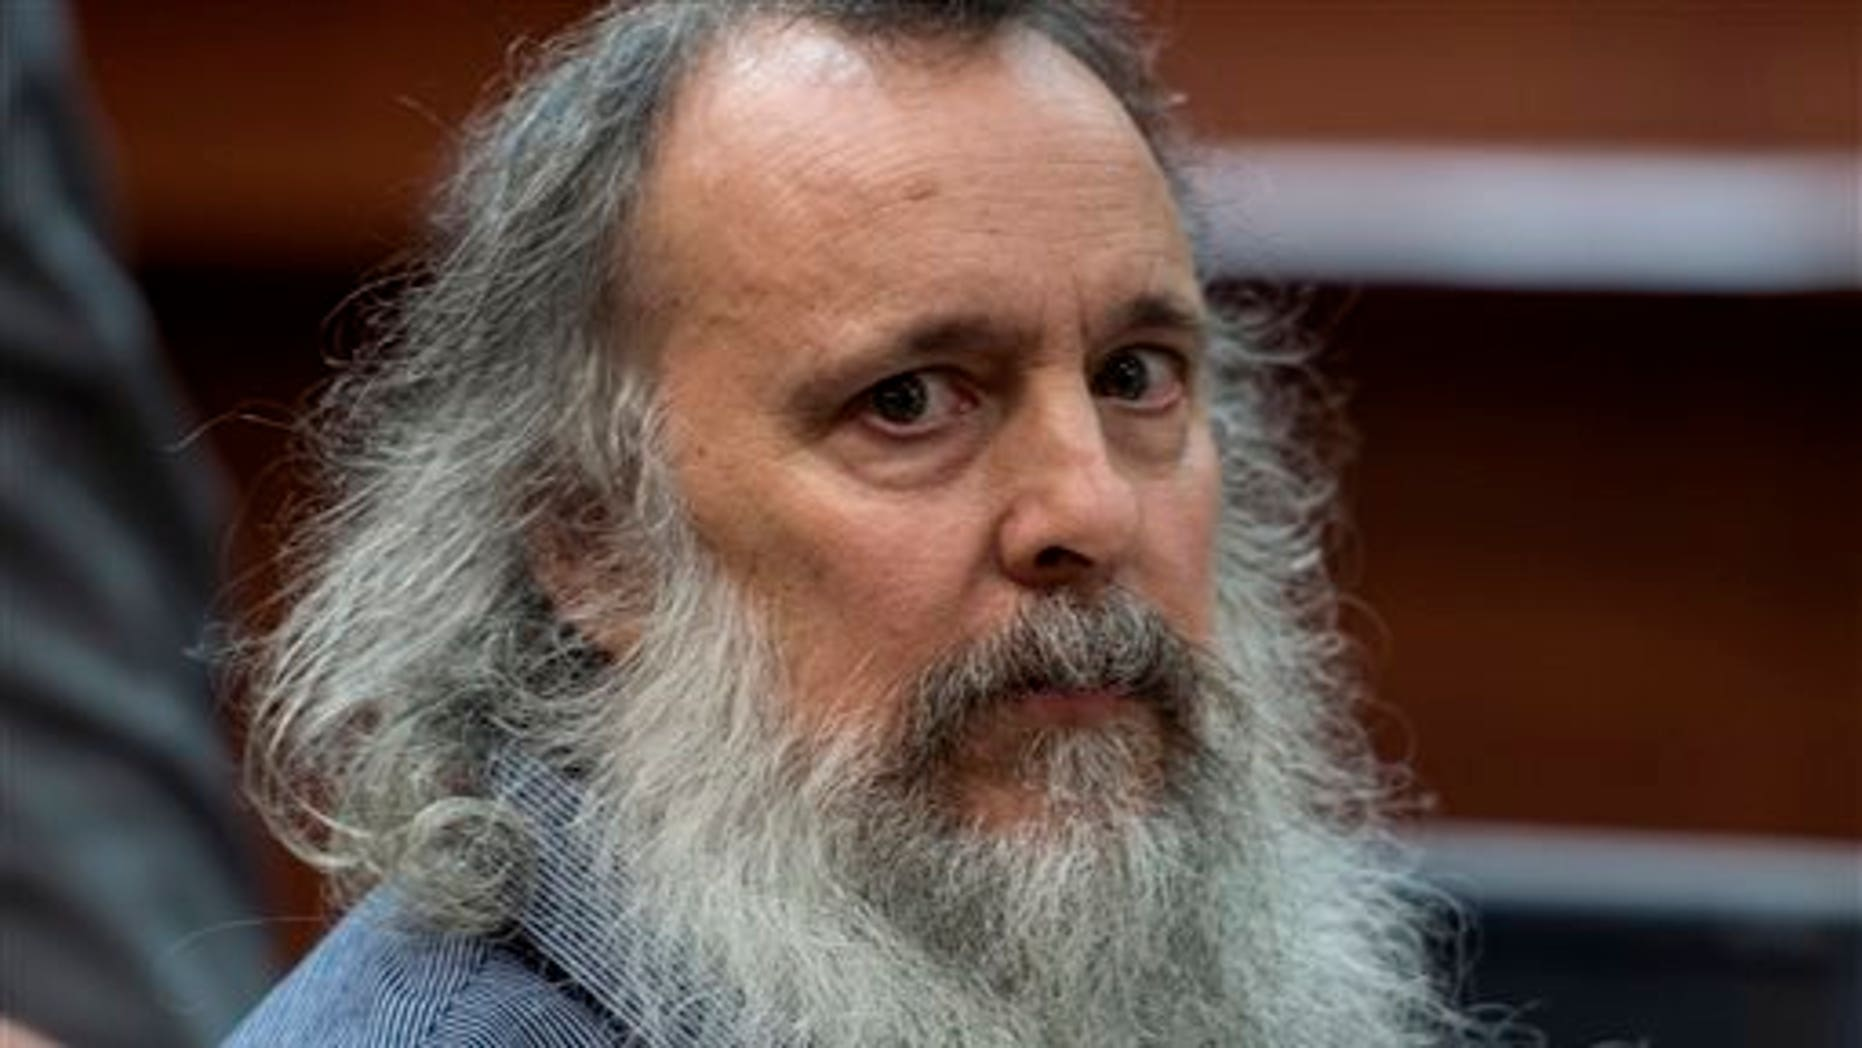 Charles Severance in court Wednesday.